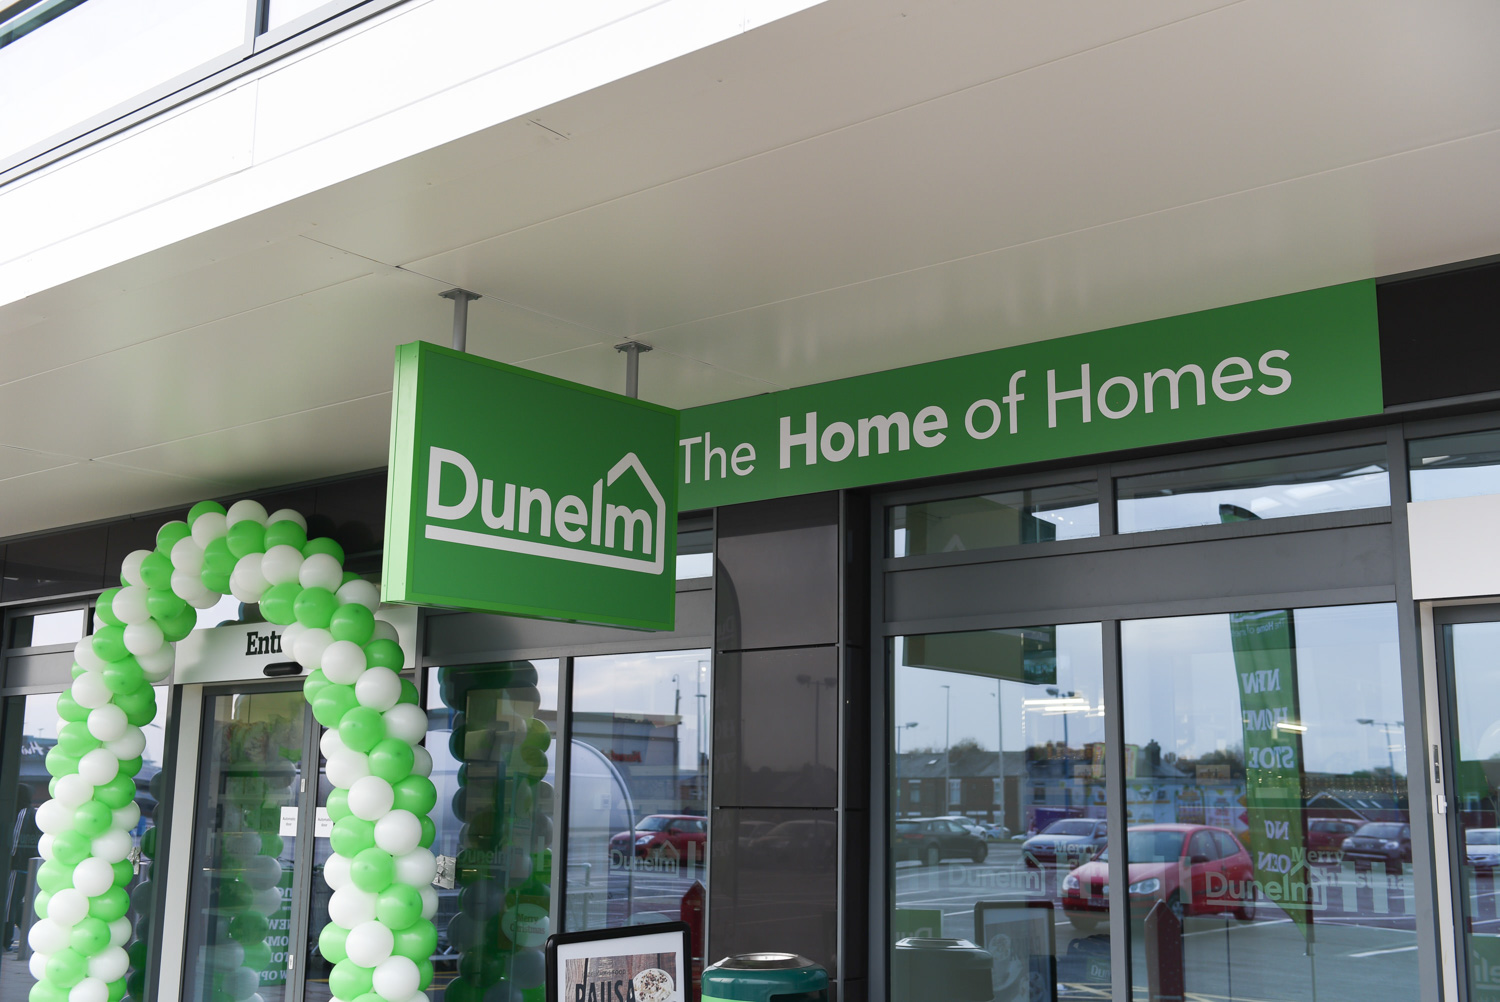 Dunelm_Warrington_7_B&W.jpg